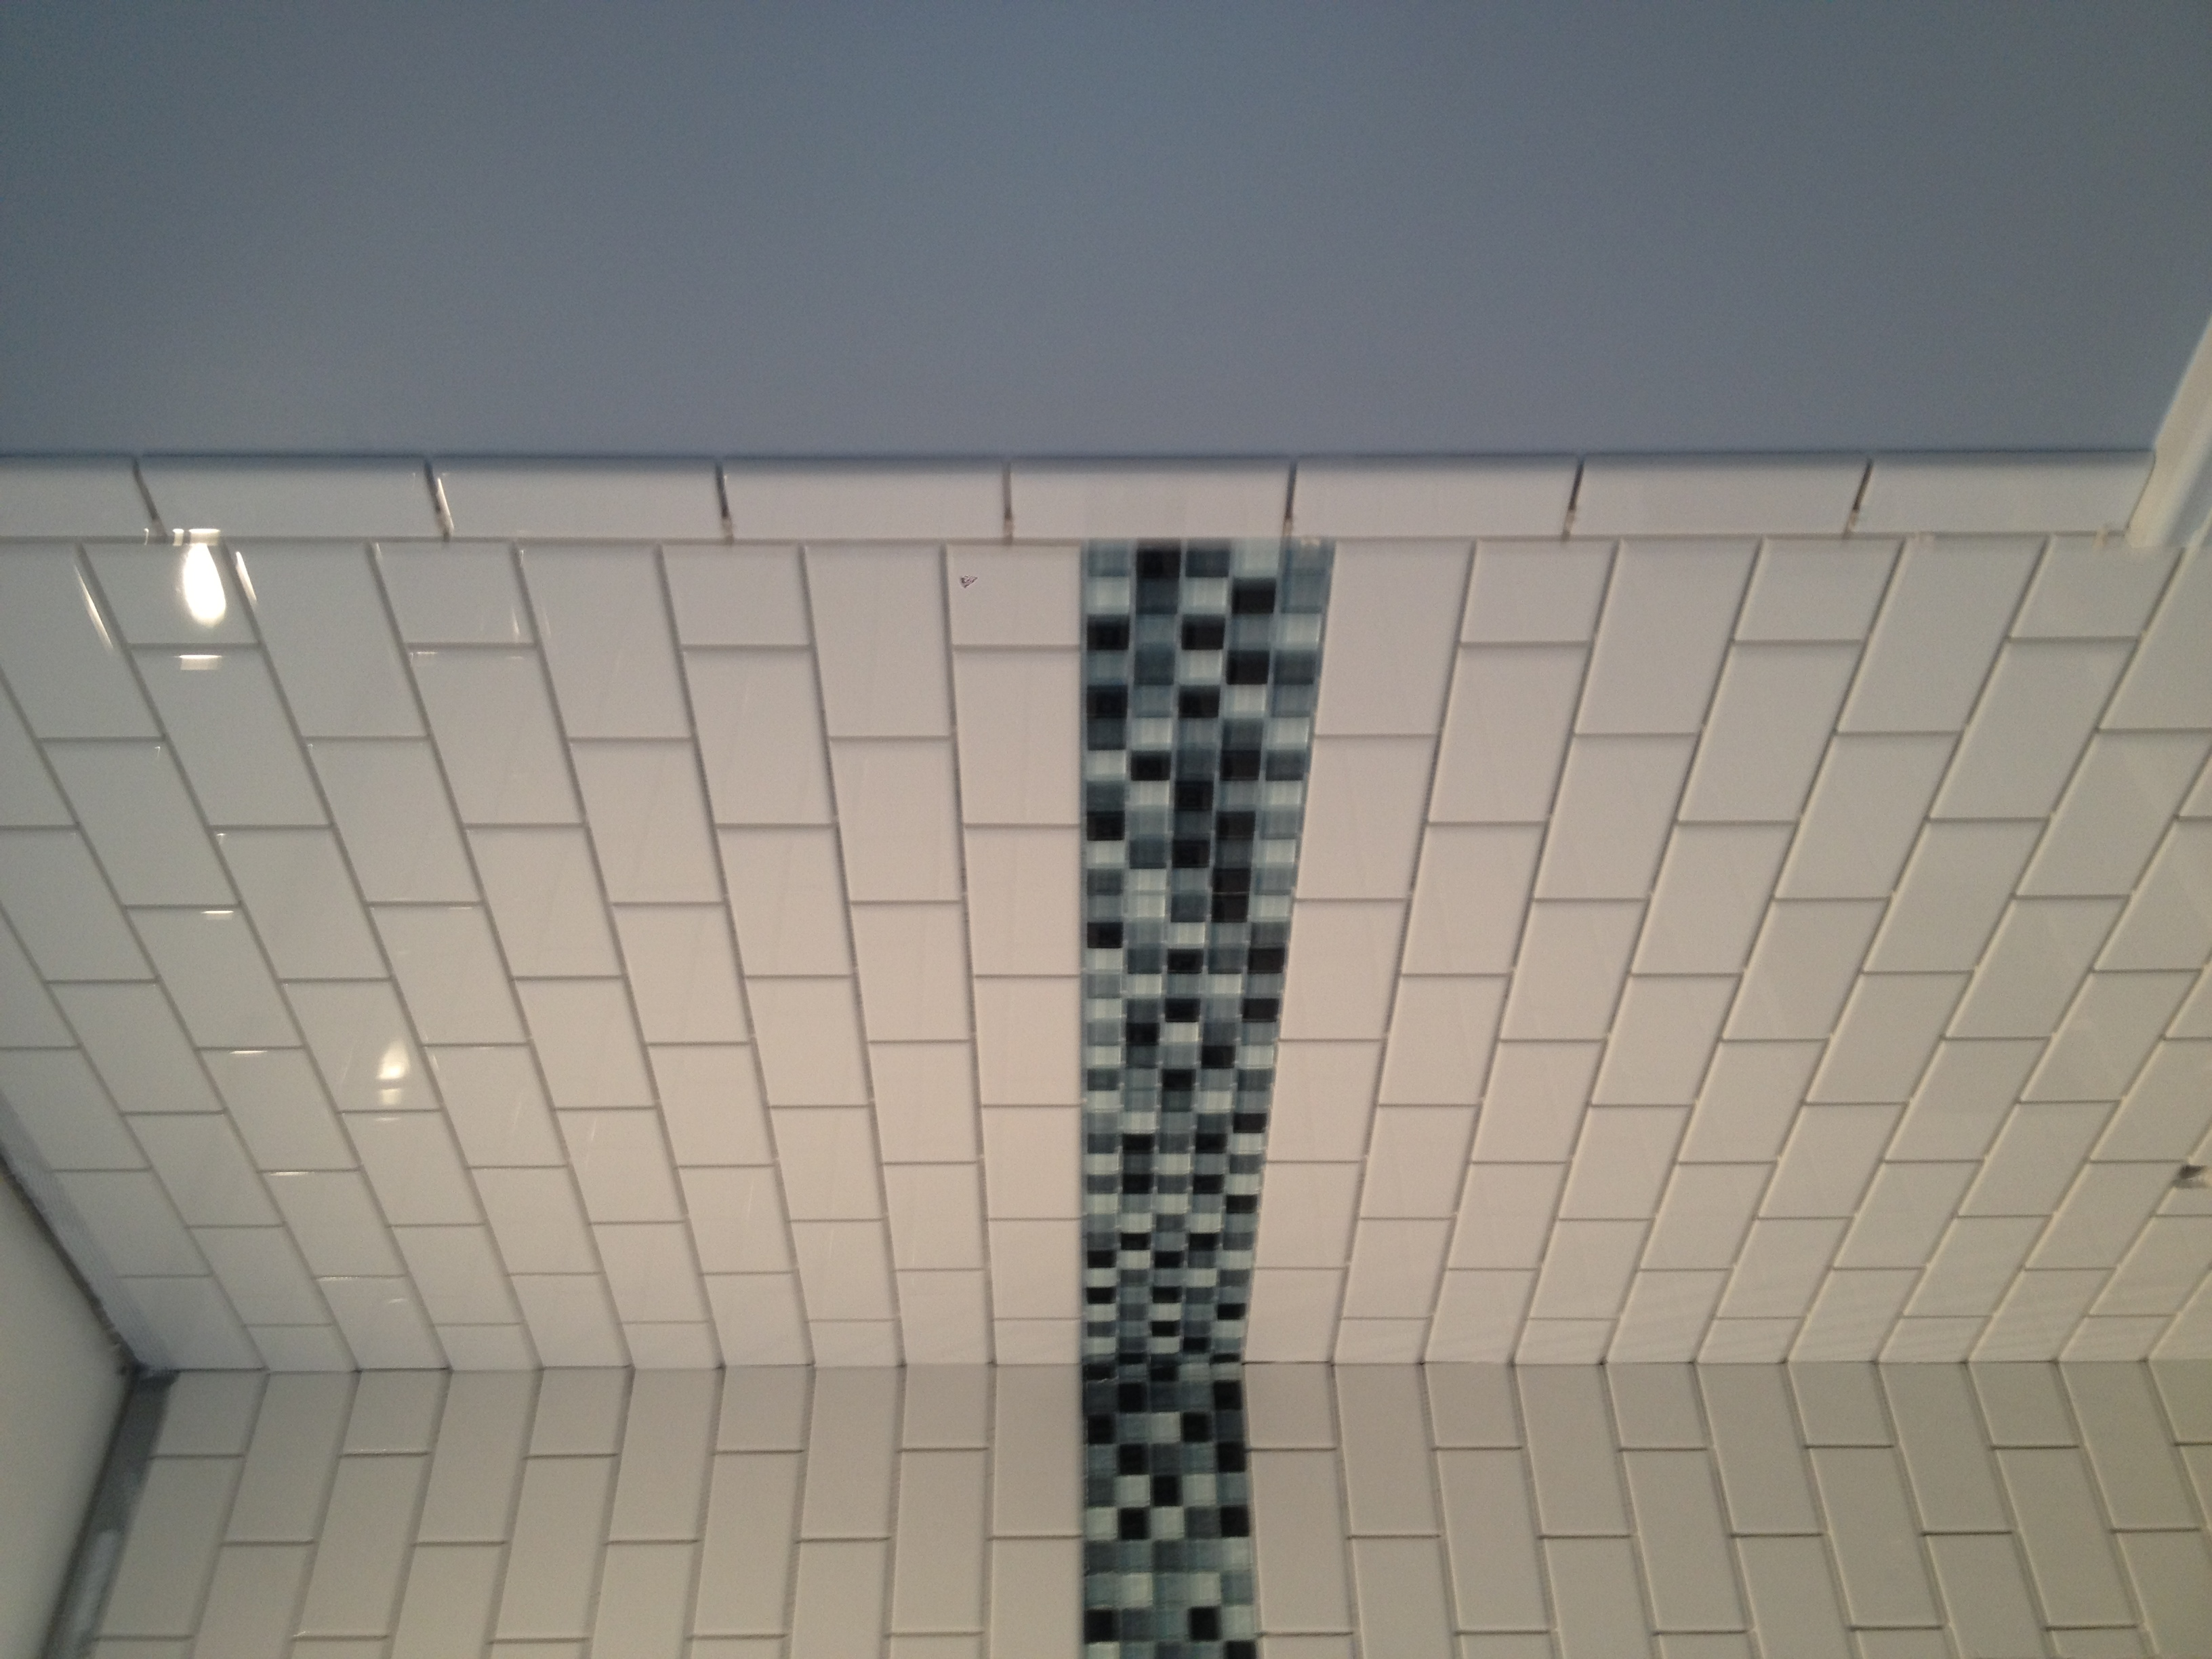 Tile complete,, ready for grout